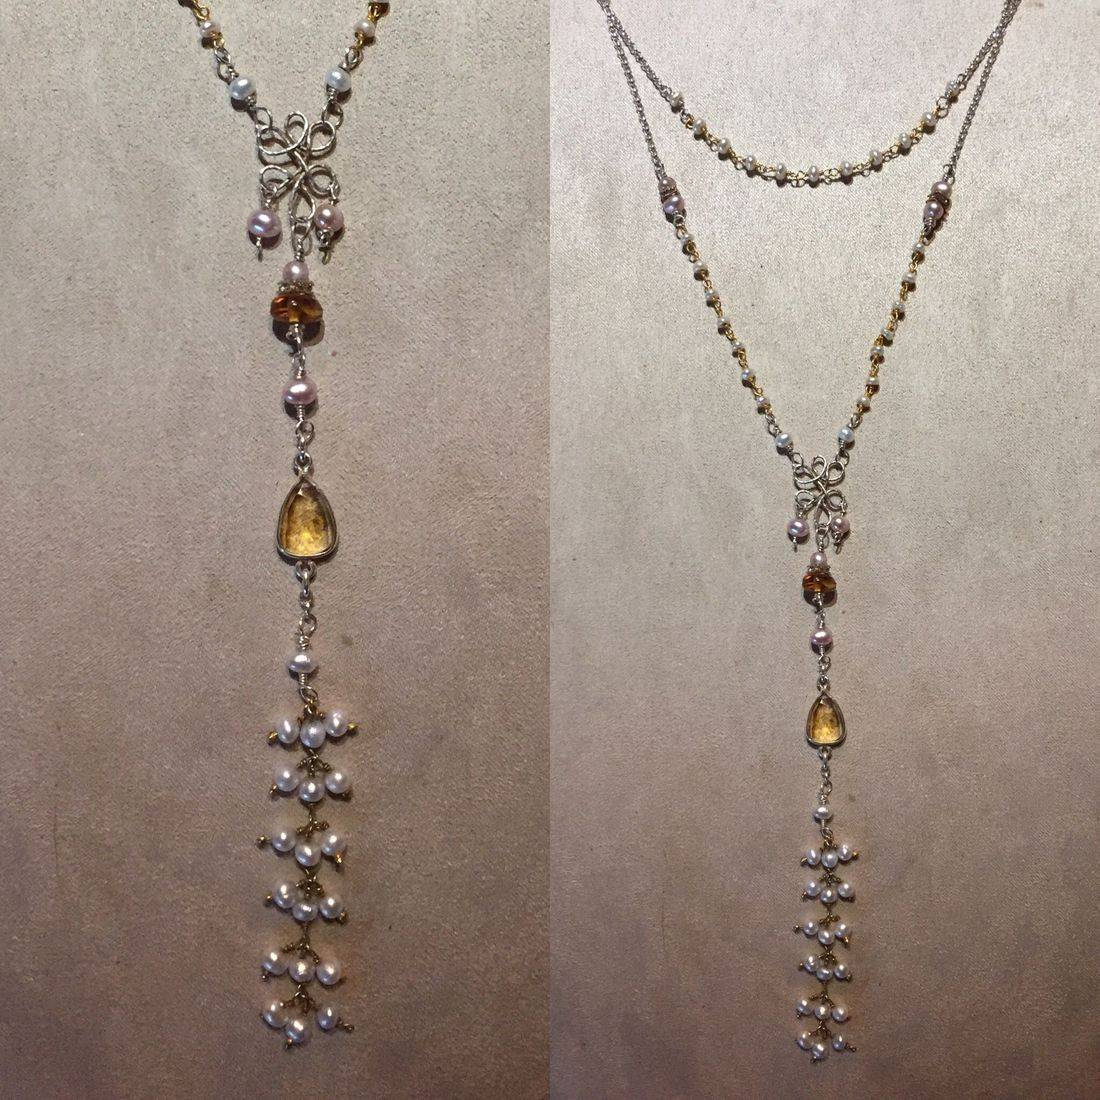 edwardiain style gemstone drop necklace with bezel set citrine, silver chandelier amber, and seed pearl tassel